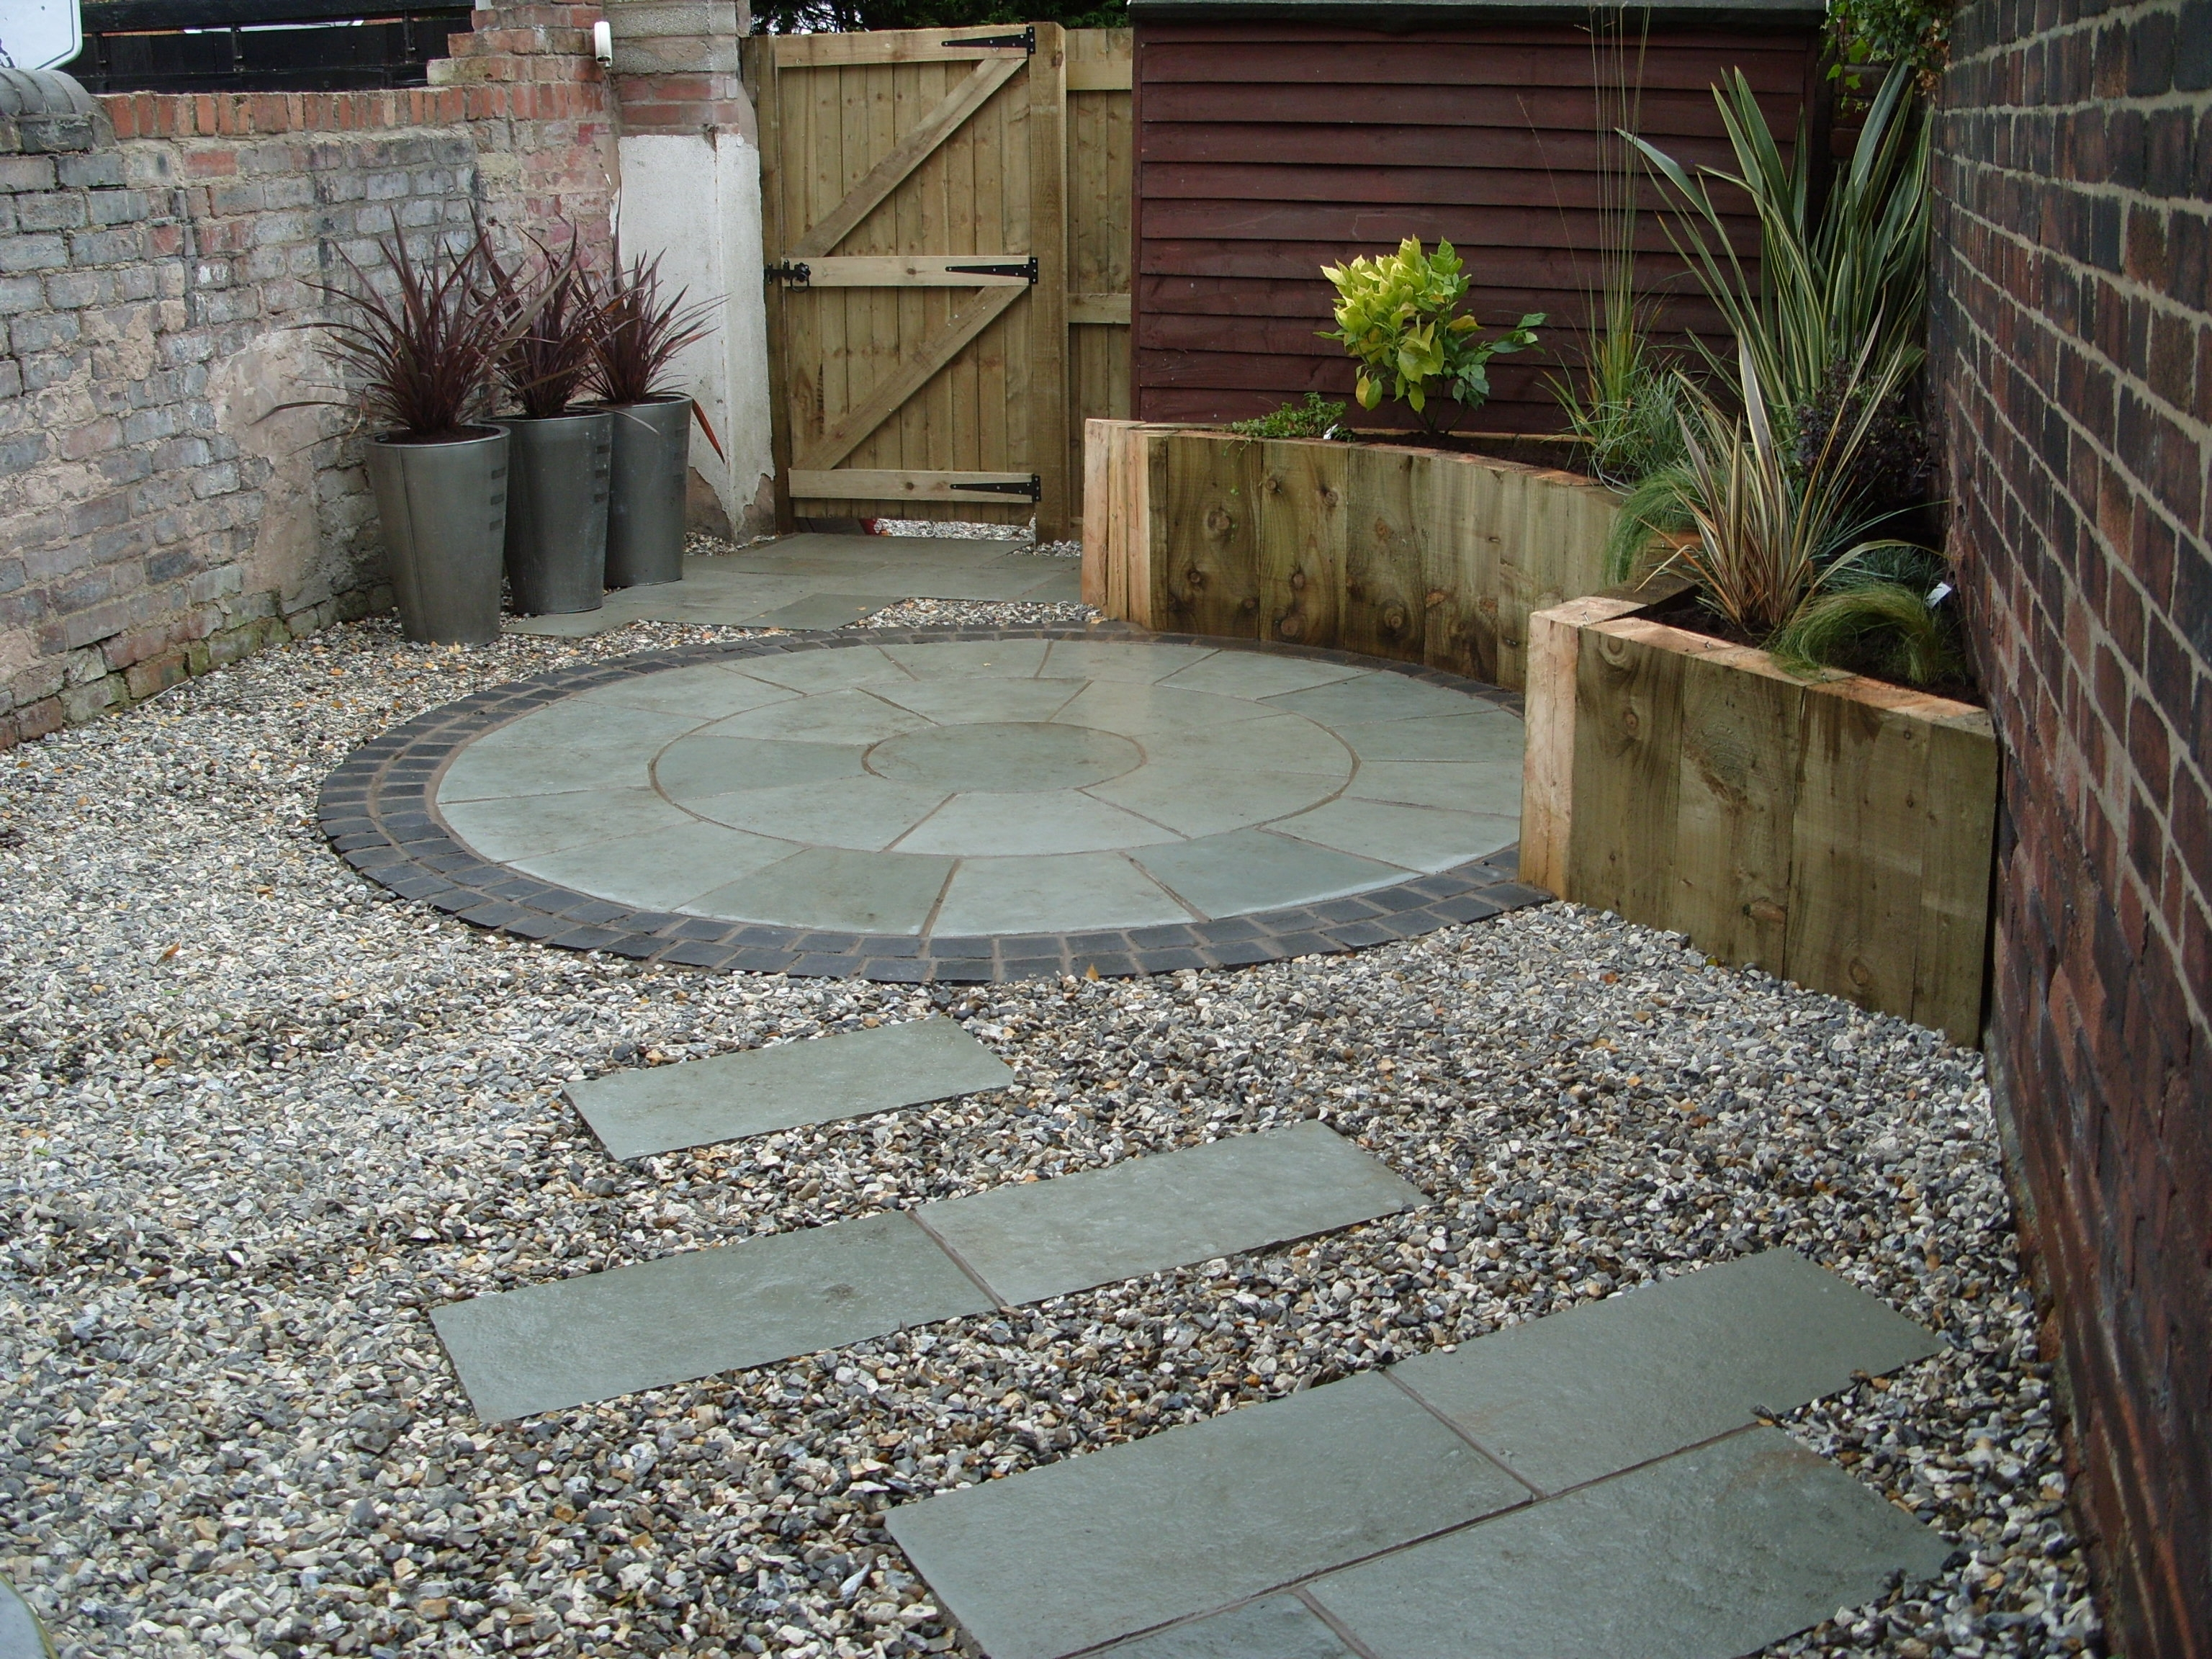 Paving ideas for small back gardens garden design for Very small back garden designs